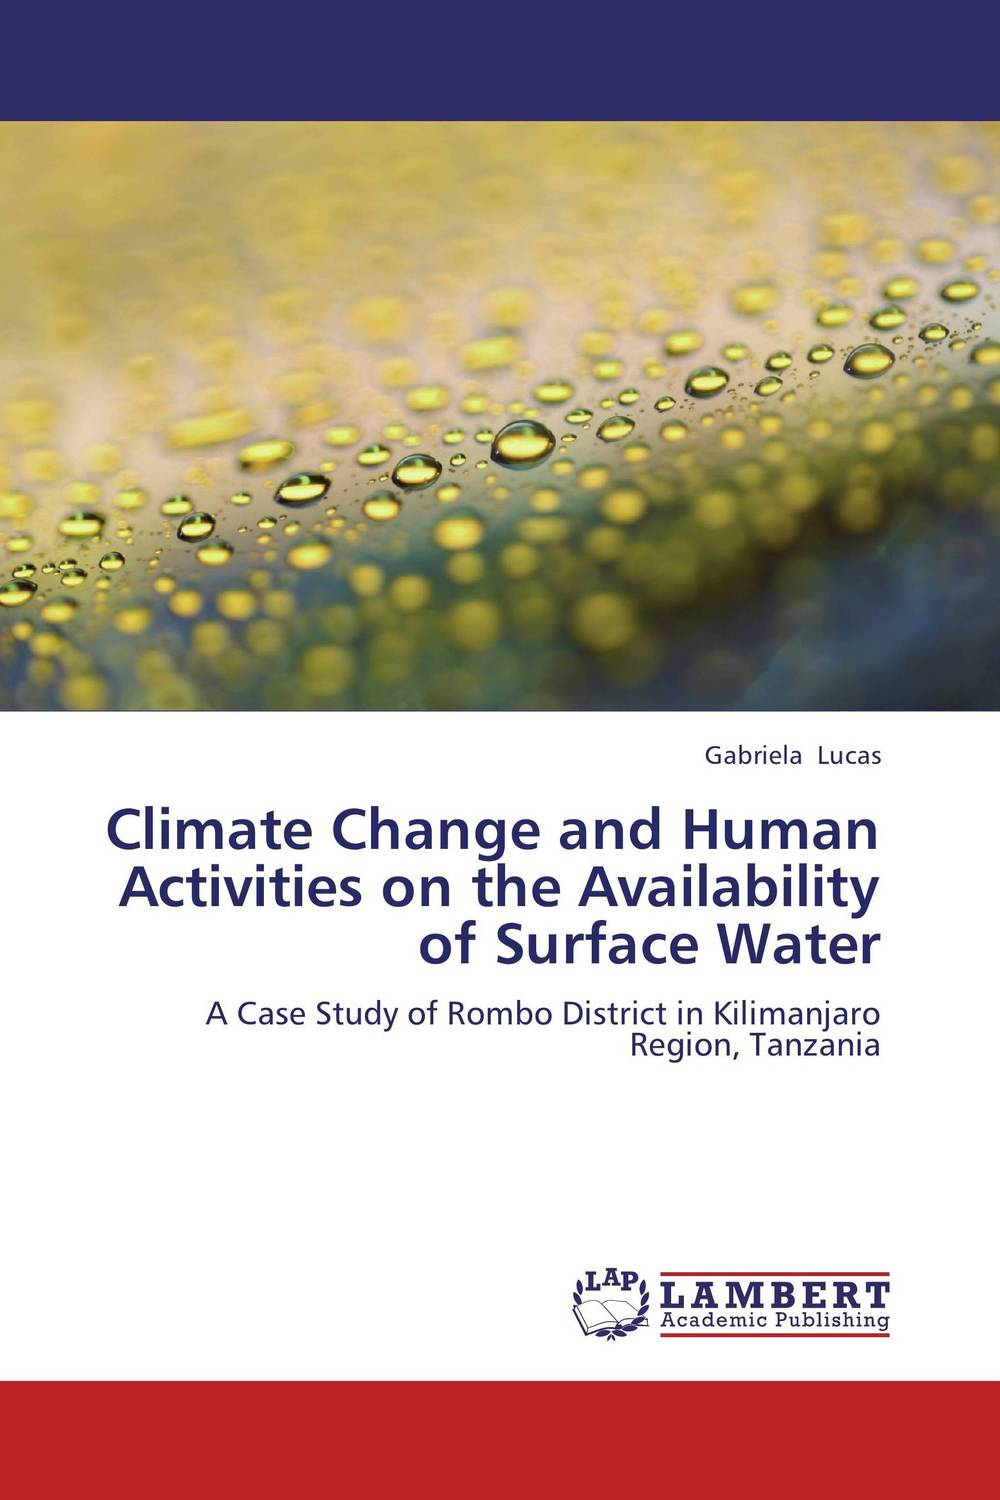 Climate Change and Human Activities on the Availability of Surface Water bistro 1 0 1875 01